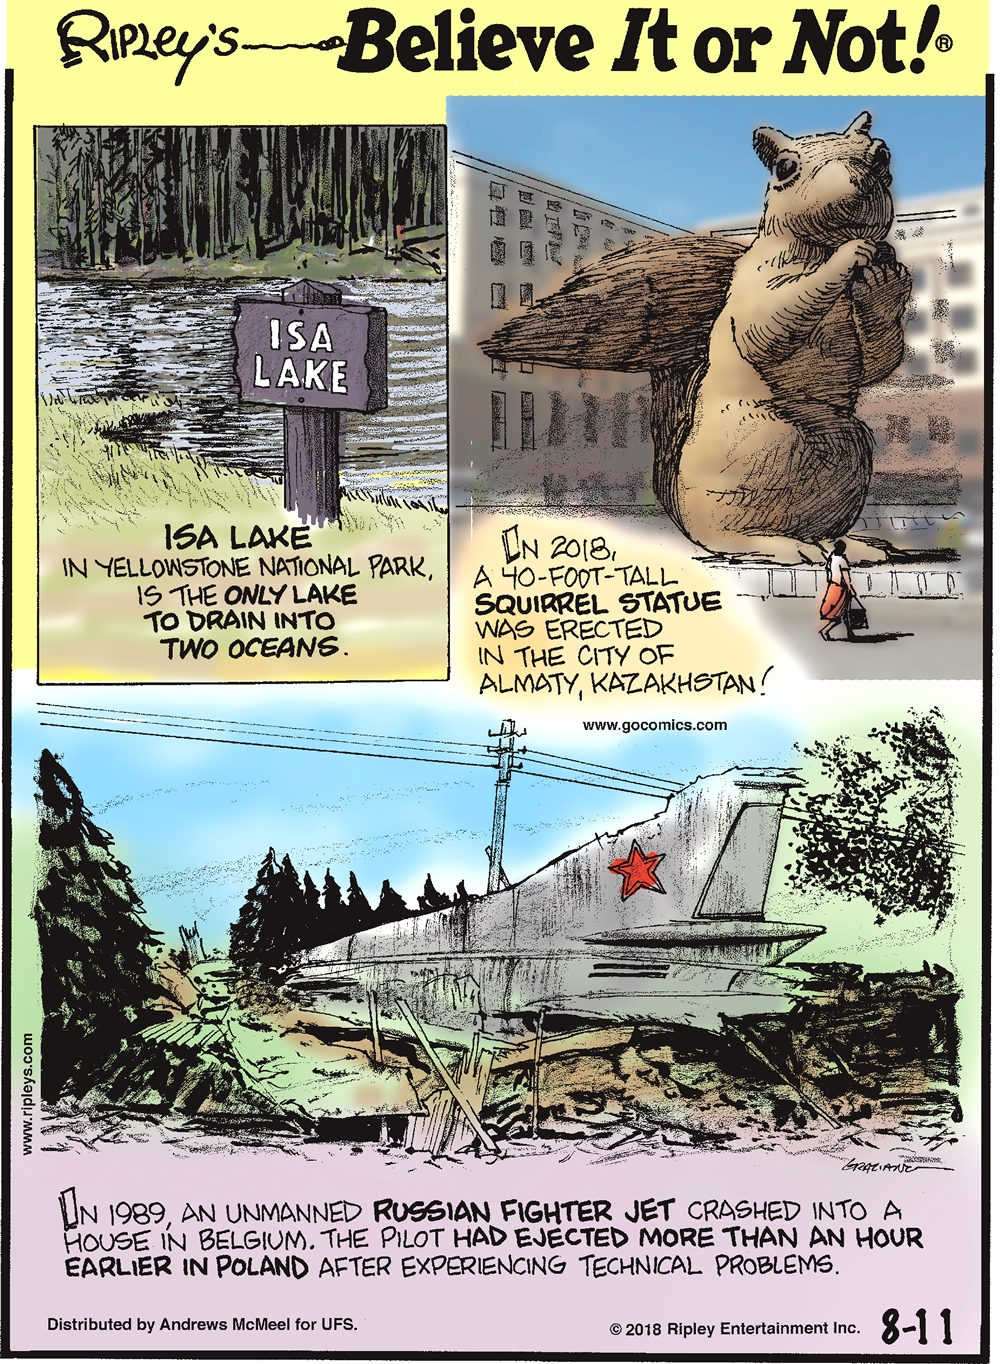 1. Isa Lake in Yellowstone National Park, is the only lake to drain into two oceans. 2. In 2018, a 40-foot-tall squirrel statue was erected in the city of Almaty, Kazakhstan! 3. In 1989, an unmanned Russian fighter jet crashed into a house in Belgium. The pilot had ejected more than an hour earlier in Poland after experiencing technical problems.